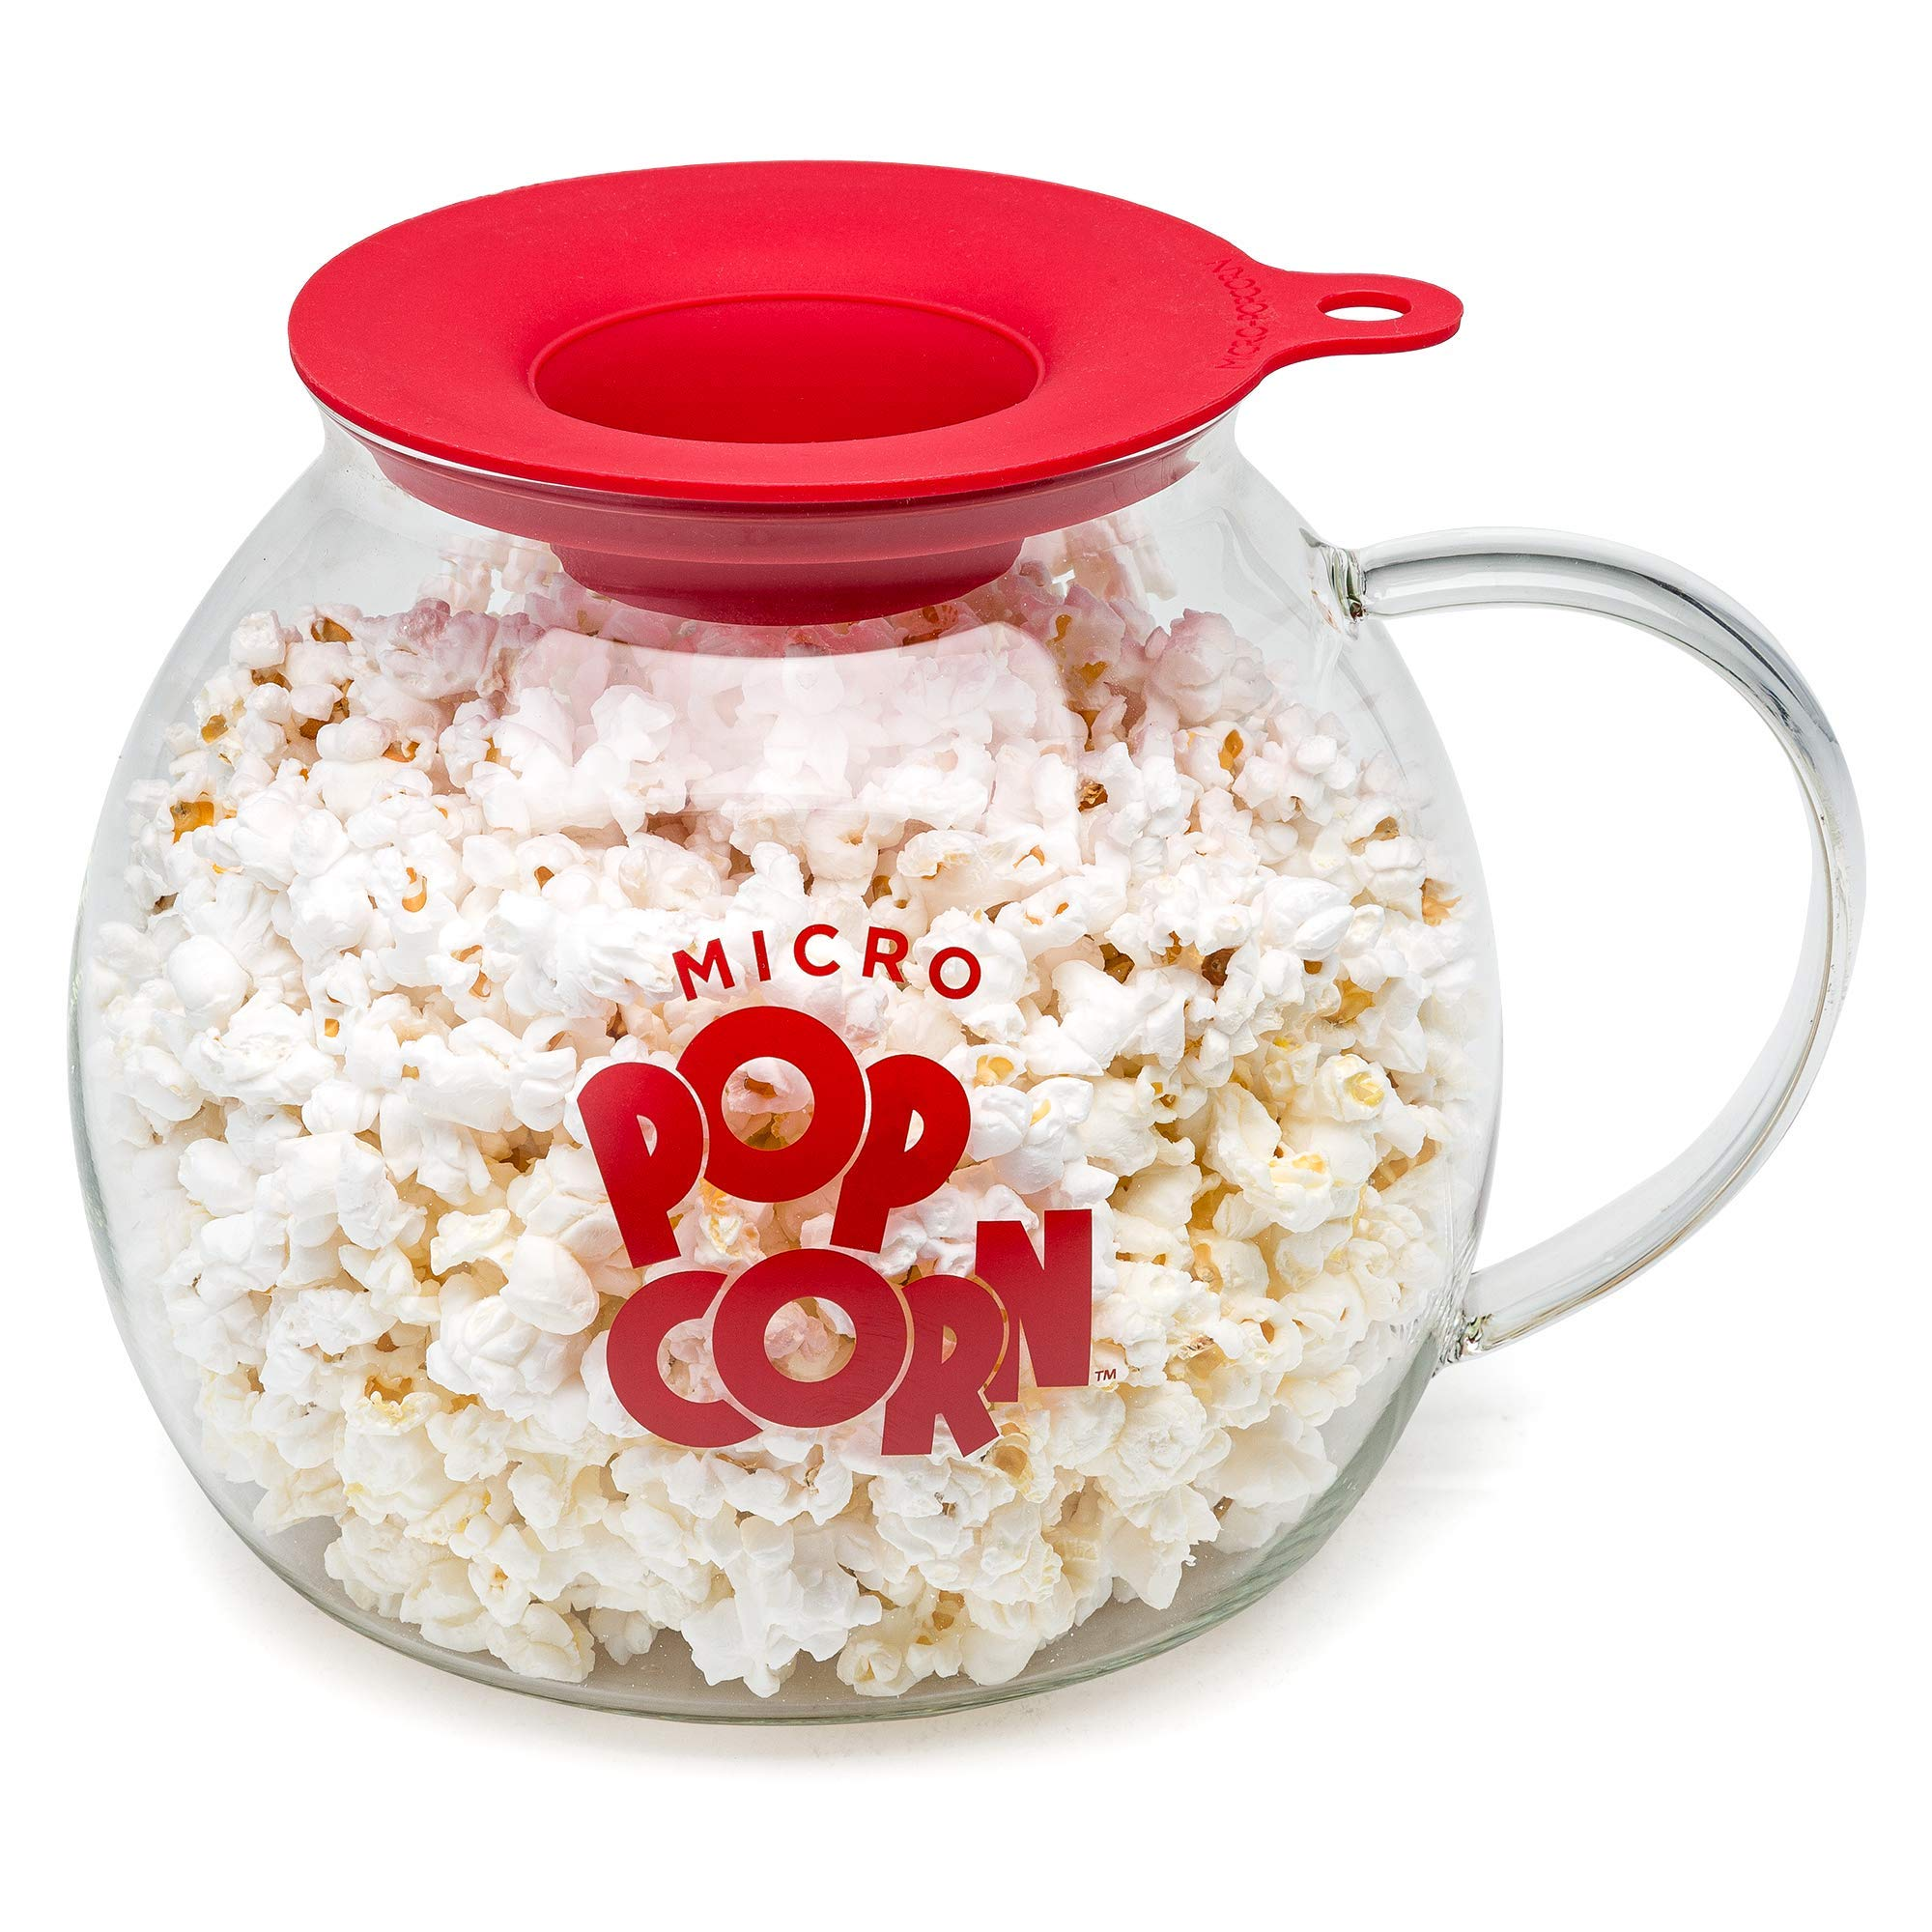 Original Microwave Micro-Pop Popcorn Popper, Borosilicate Glass, 3-in-1 Silicone Lid, Dishwasher Safe, BPA Free, 3 Quart by Epoca